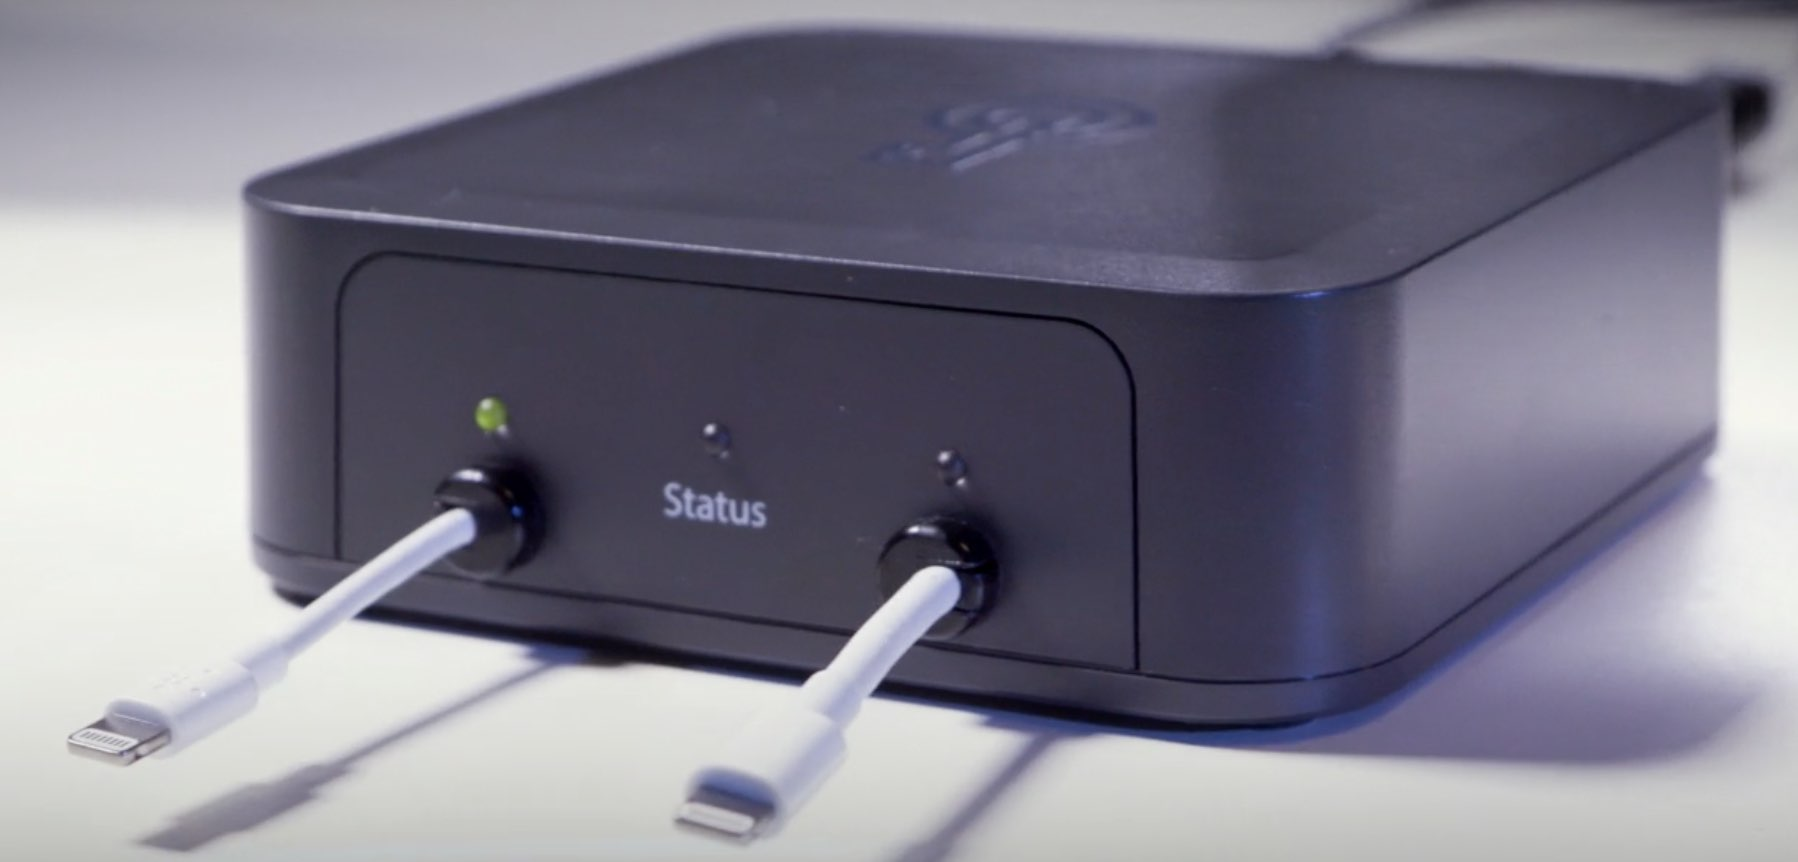 GrayKey hacking box uses iPhone USB data to help law enforcement officials crack your passcode